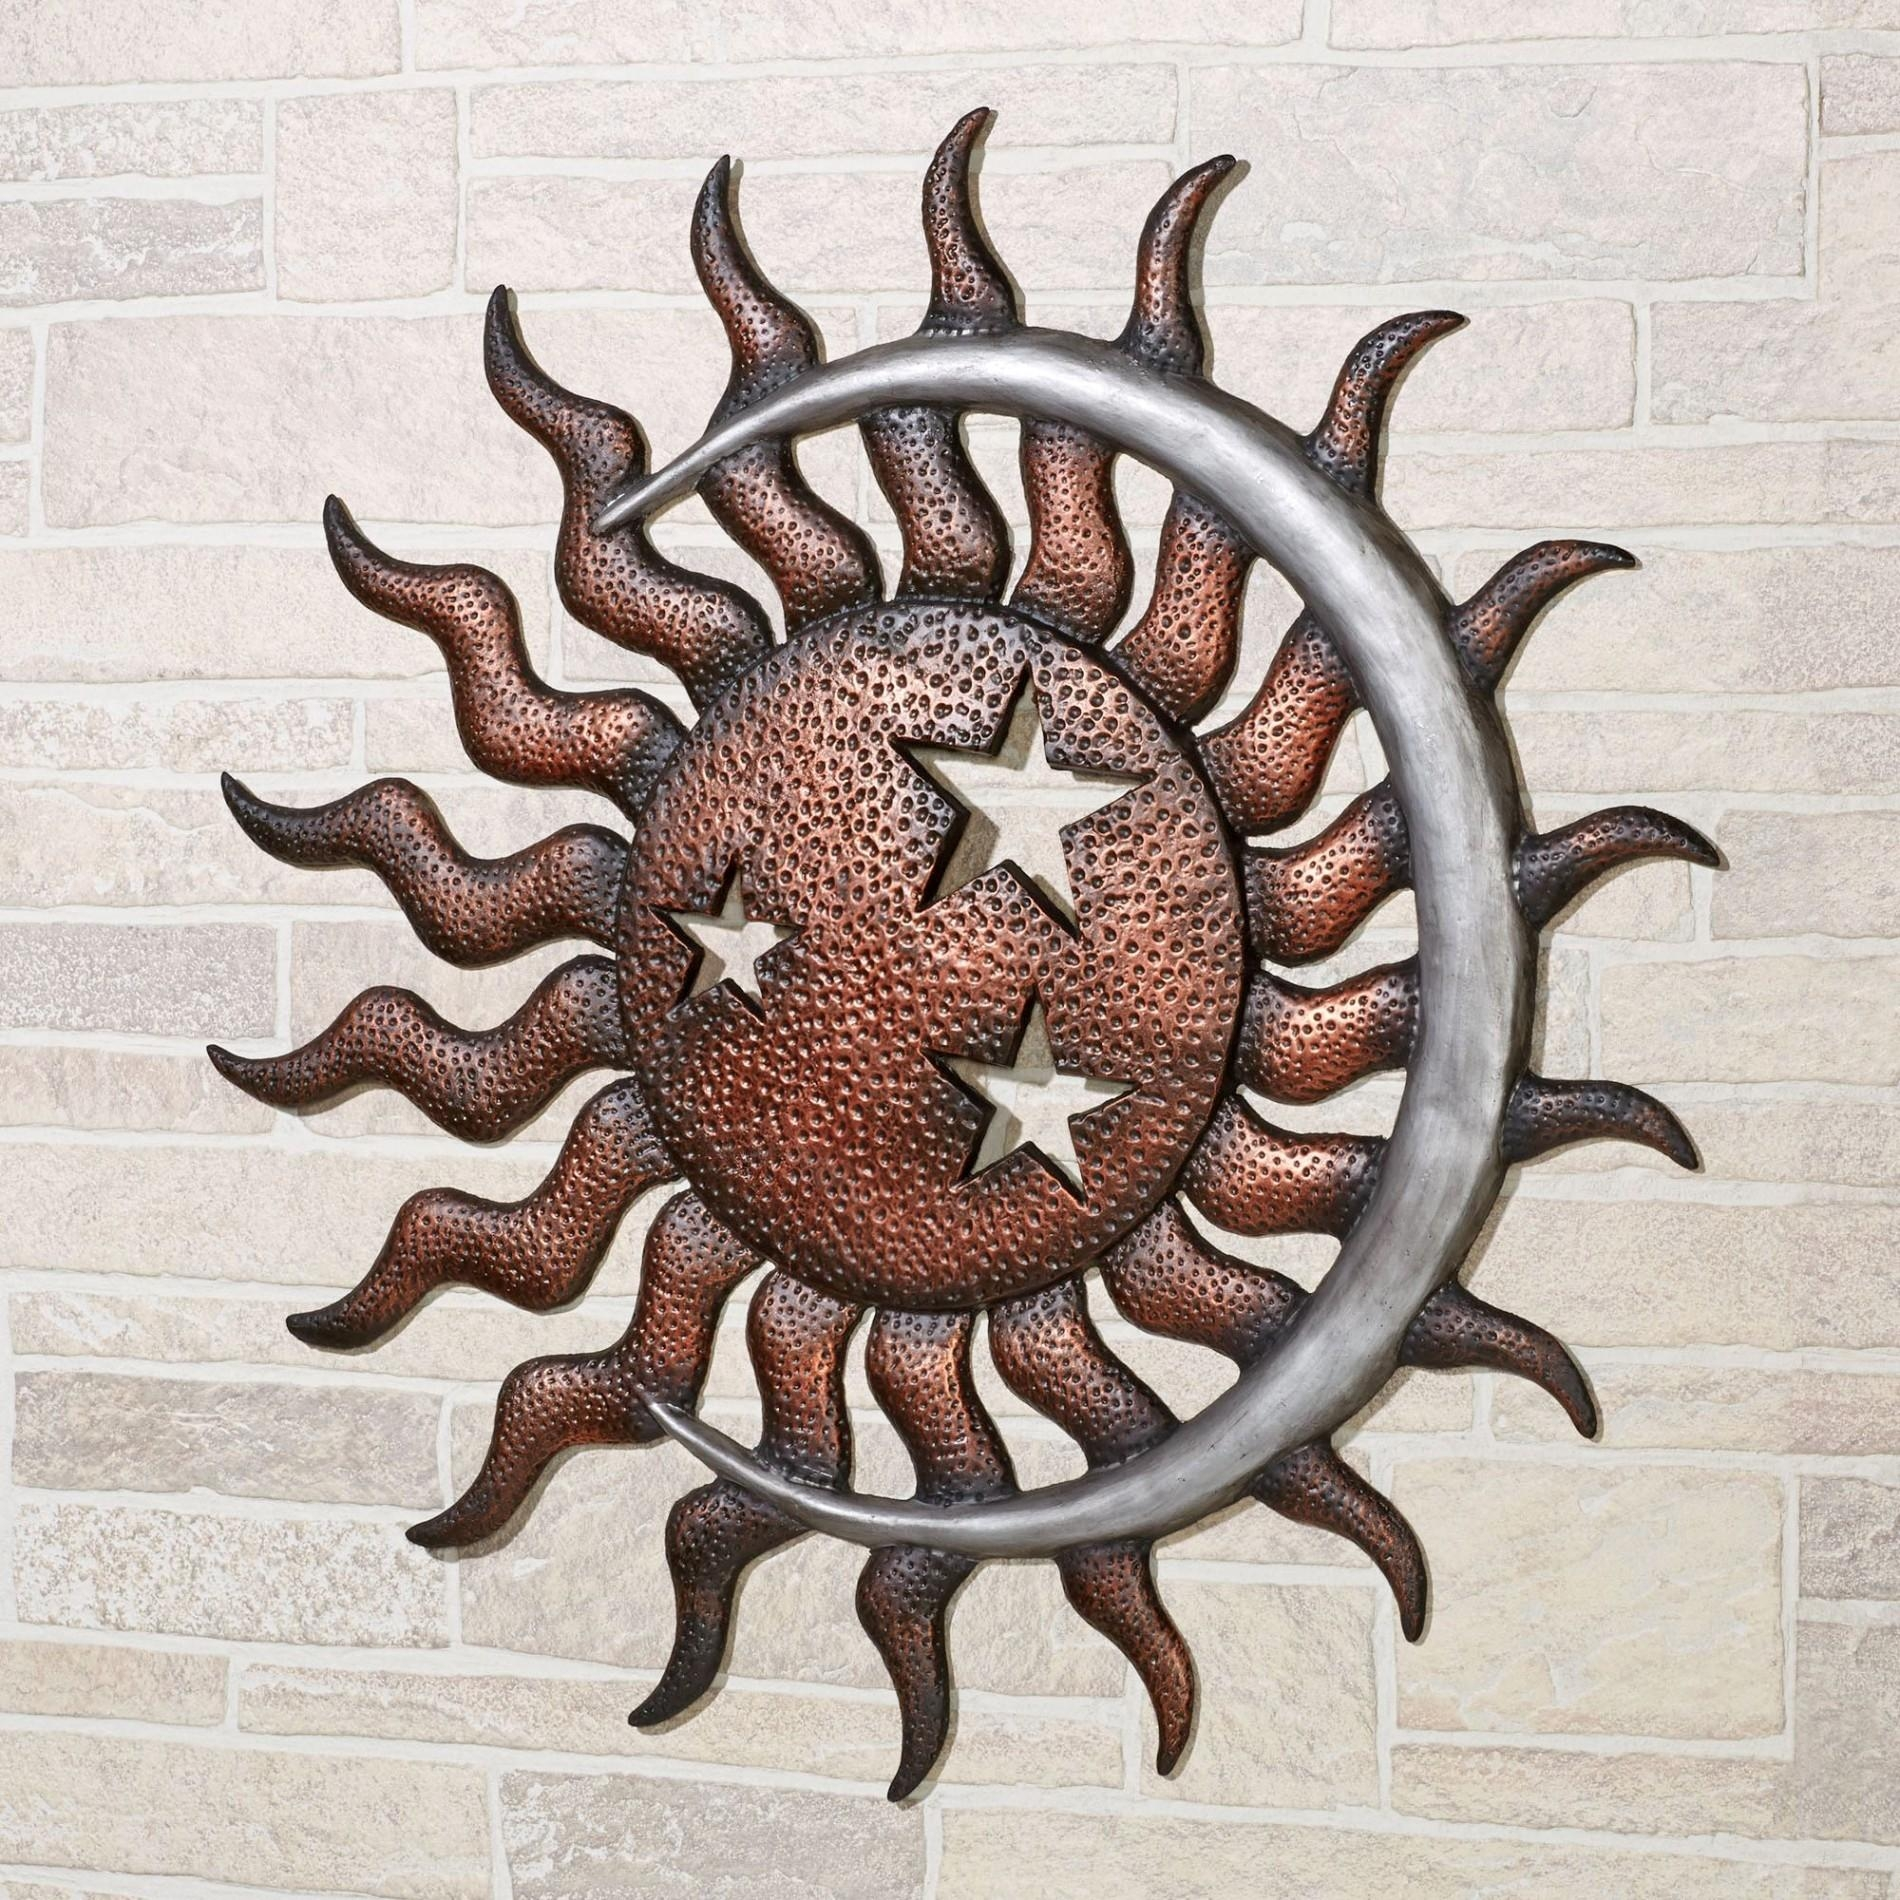 Unique Wrought Iron Wall Decor Walmart Within Walmart Metal Wall Art (Image 12 of 20)